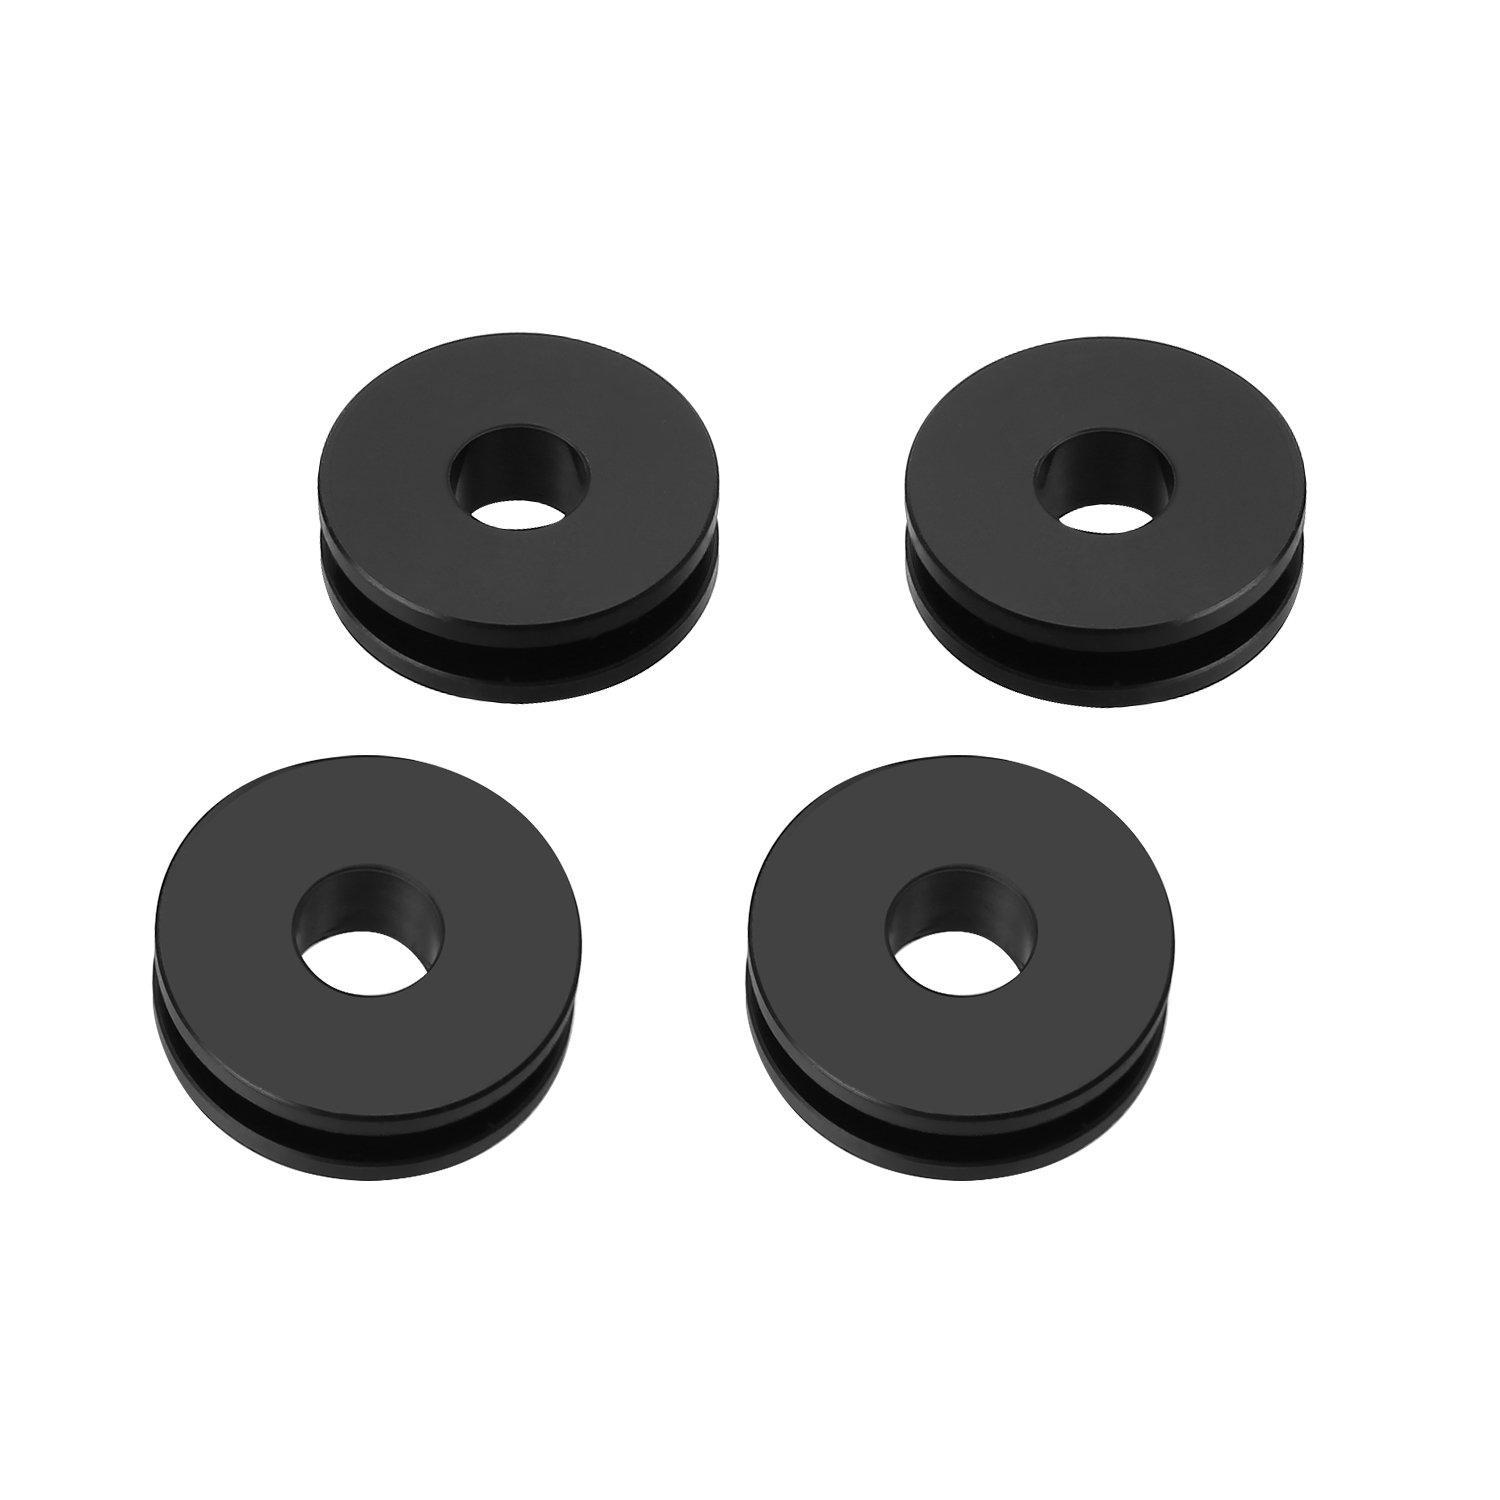 CICMOD Detachable Windshield Replacement Bushing Grommets for Harley Road King Softail Black